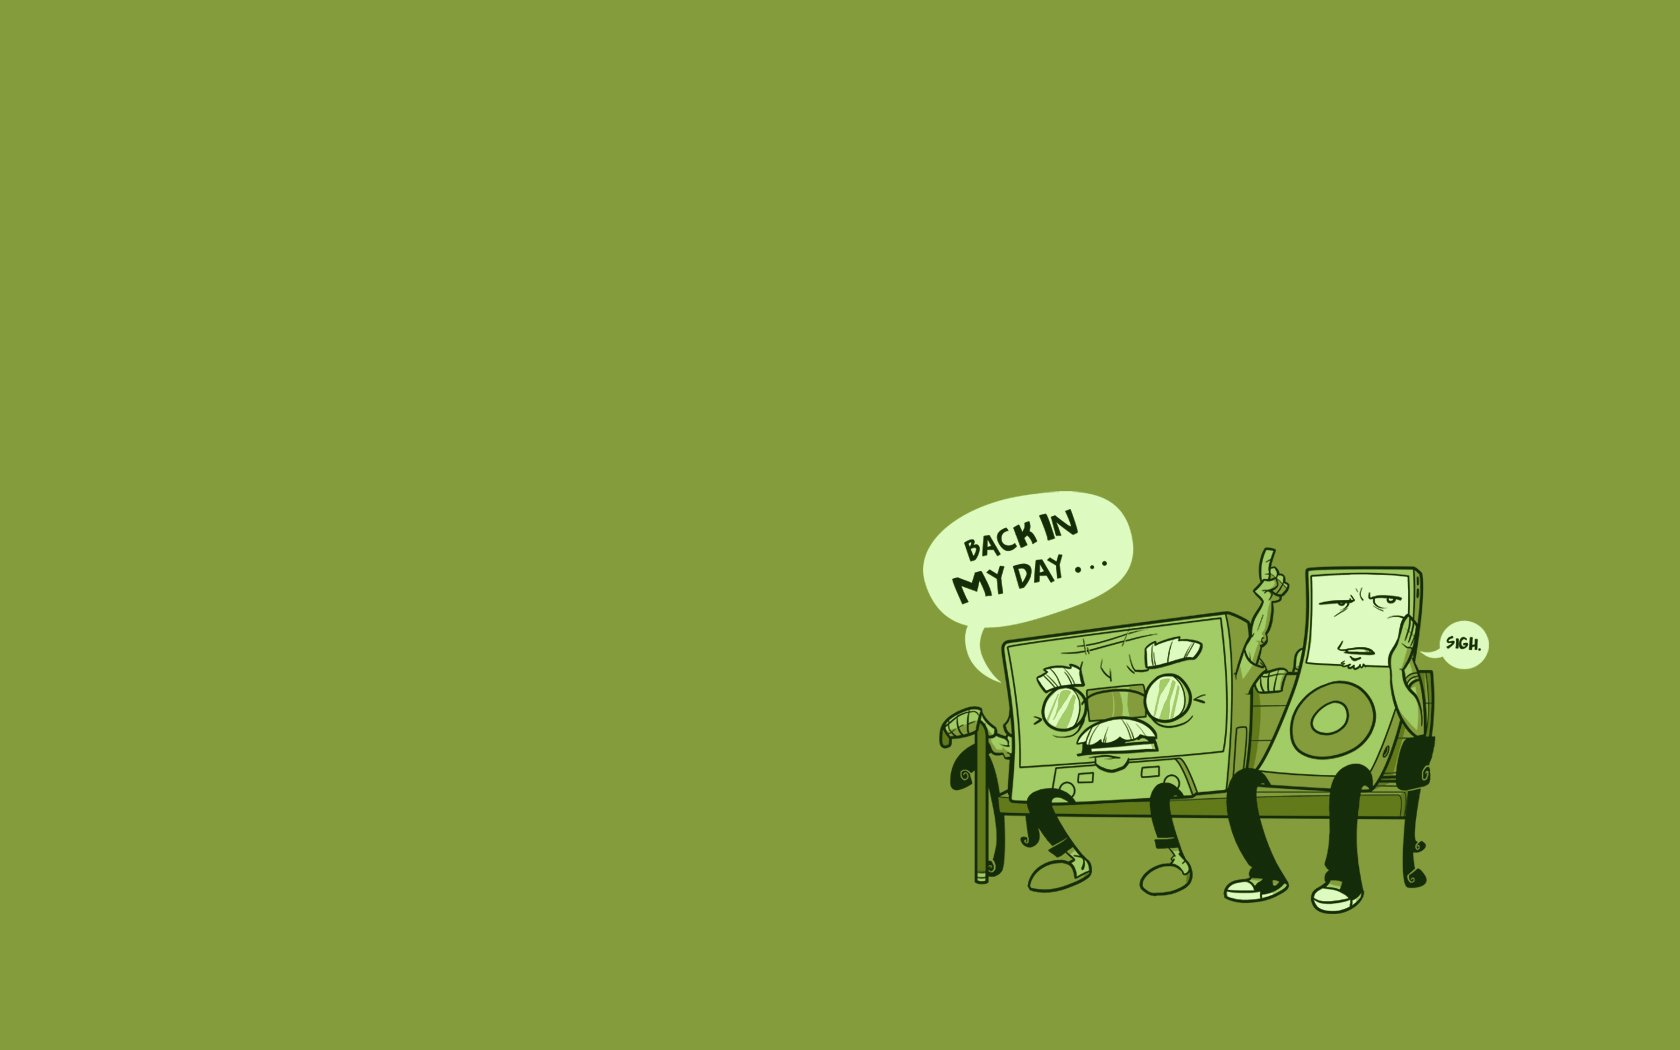 Funny Wallpapers 1680x1050